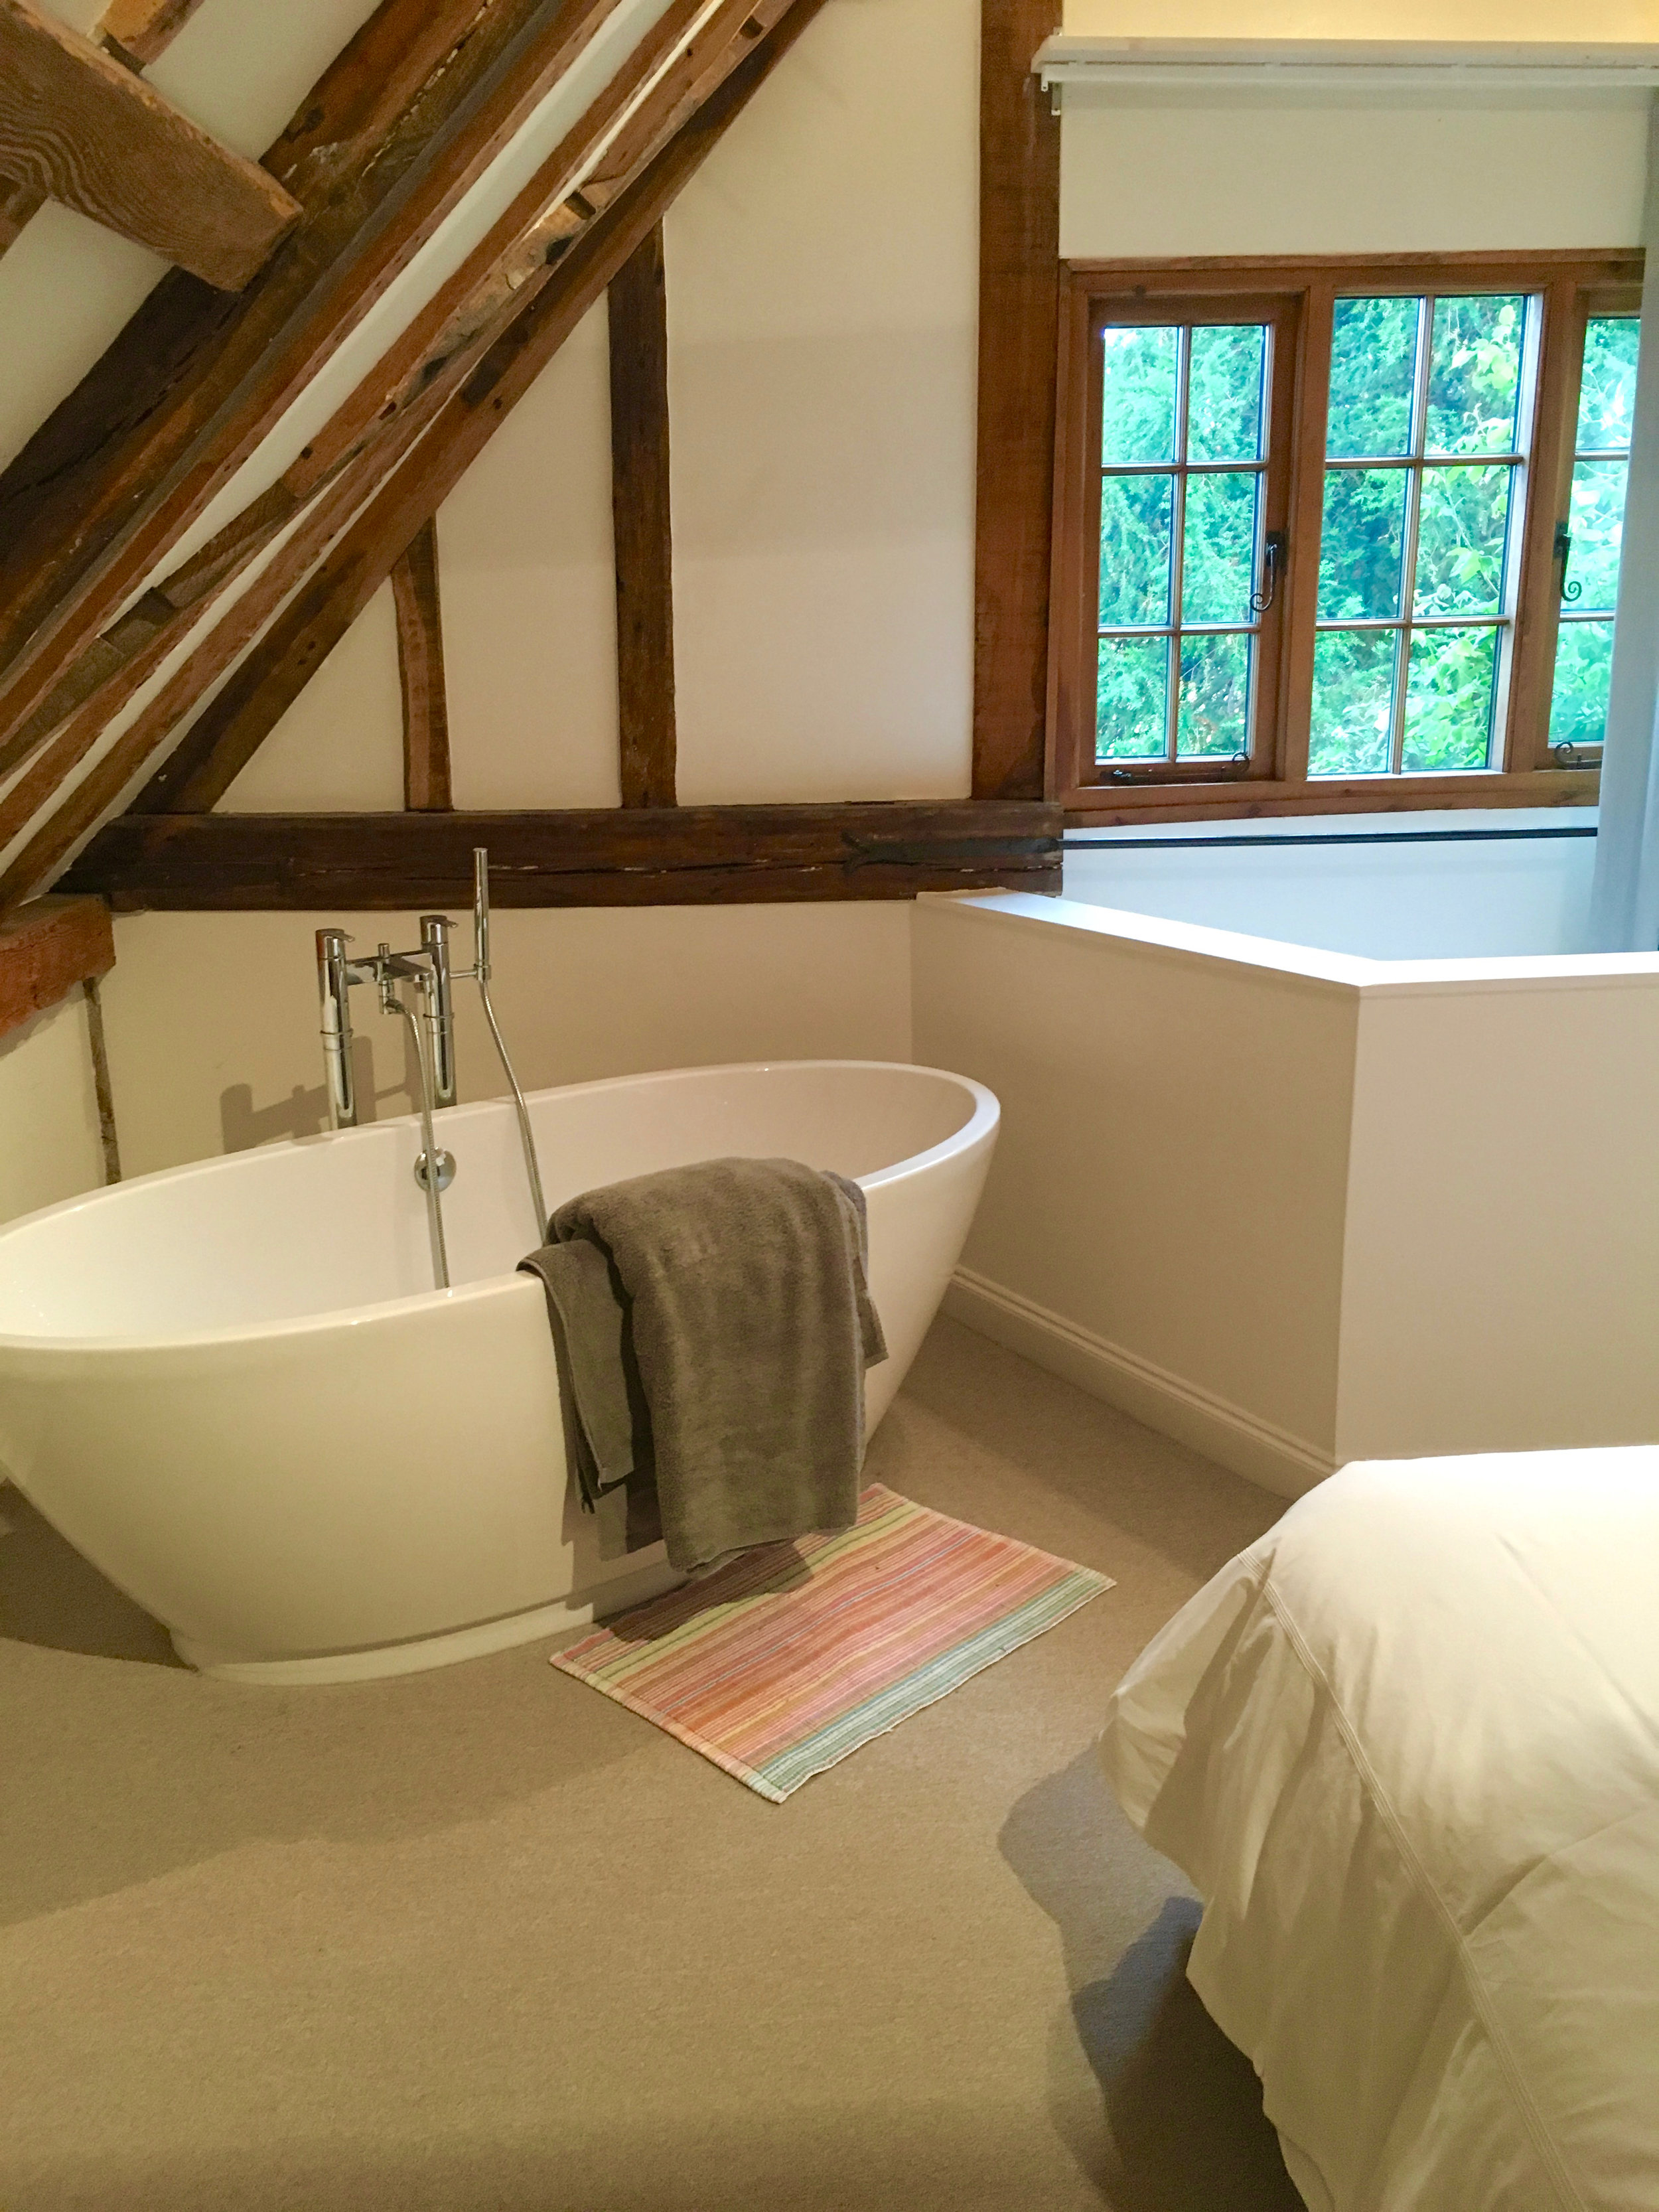 Bath in the bedroom upstairs